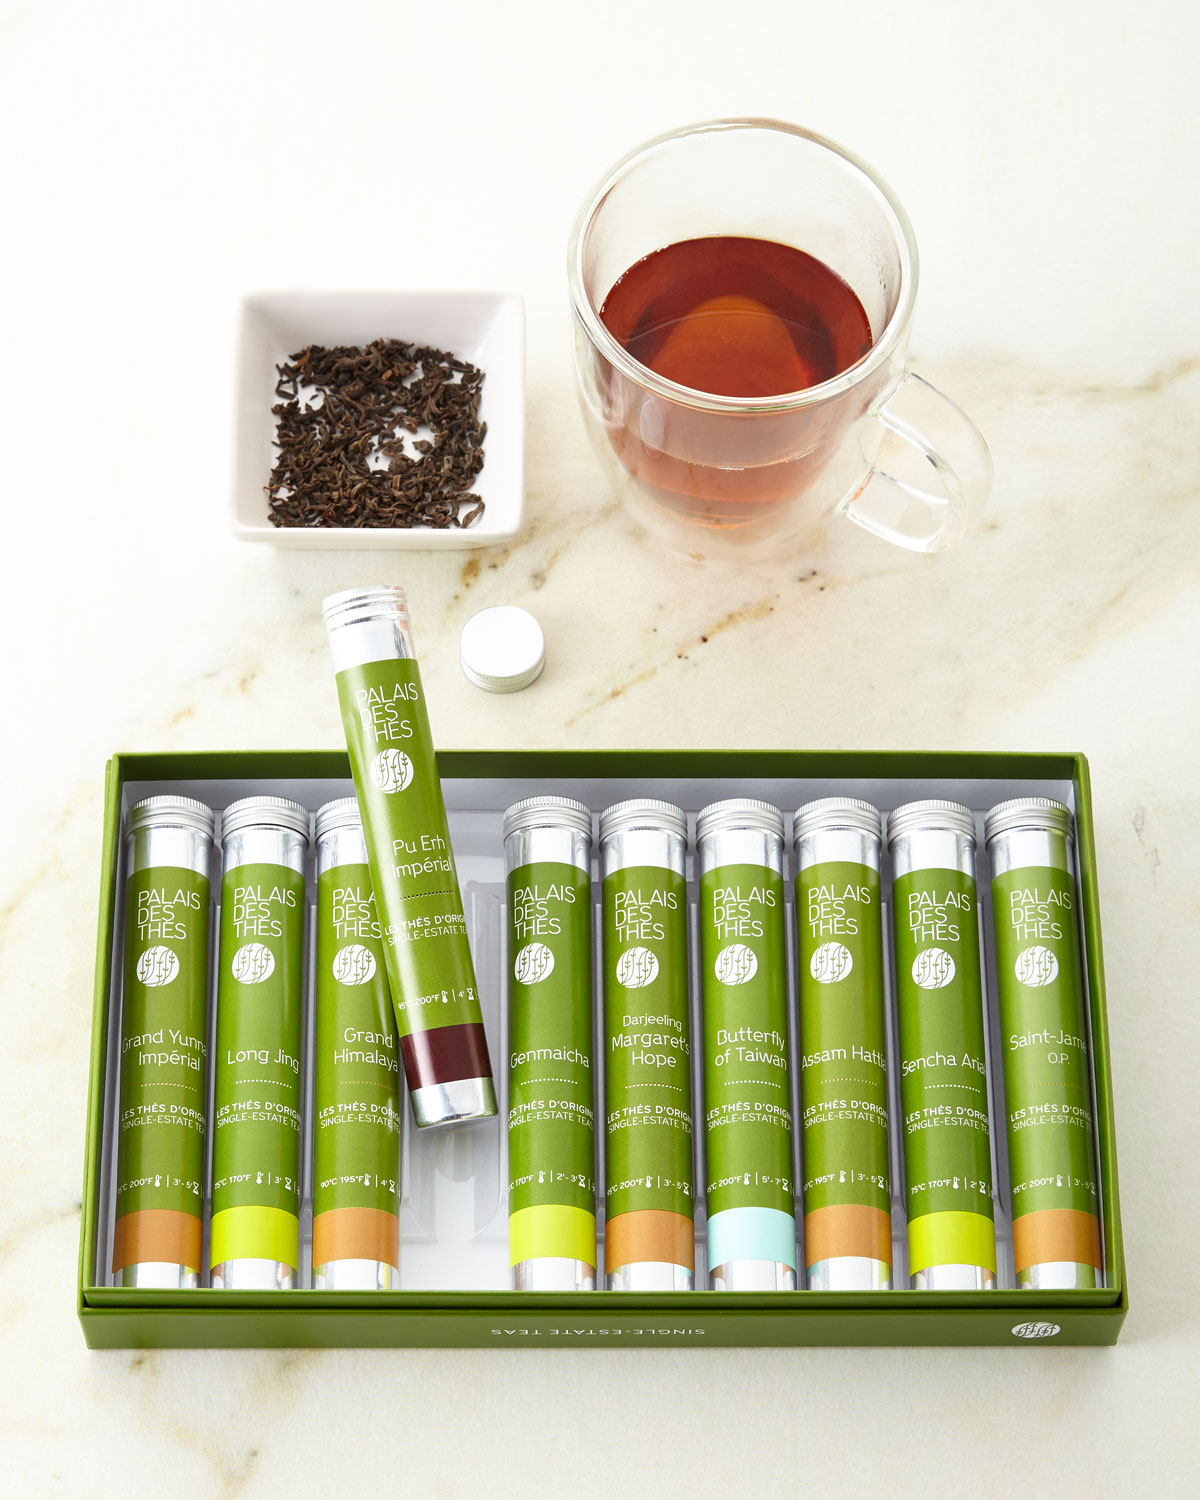 Palais des Thes Single-Estate Teas From Around the World Vial Set